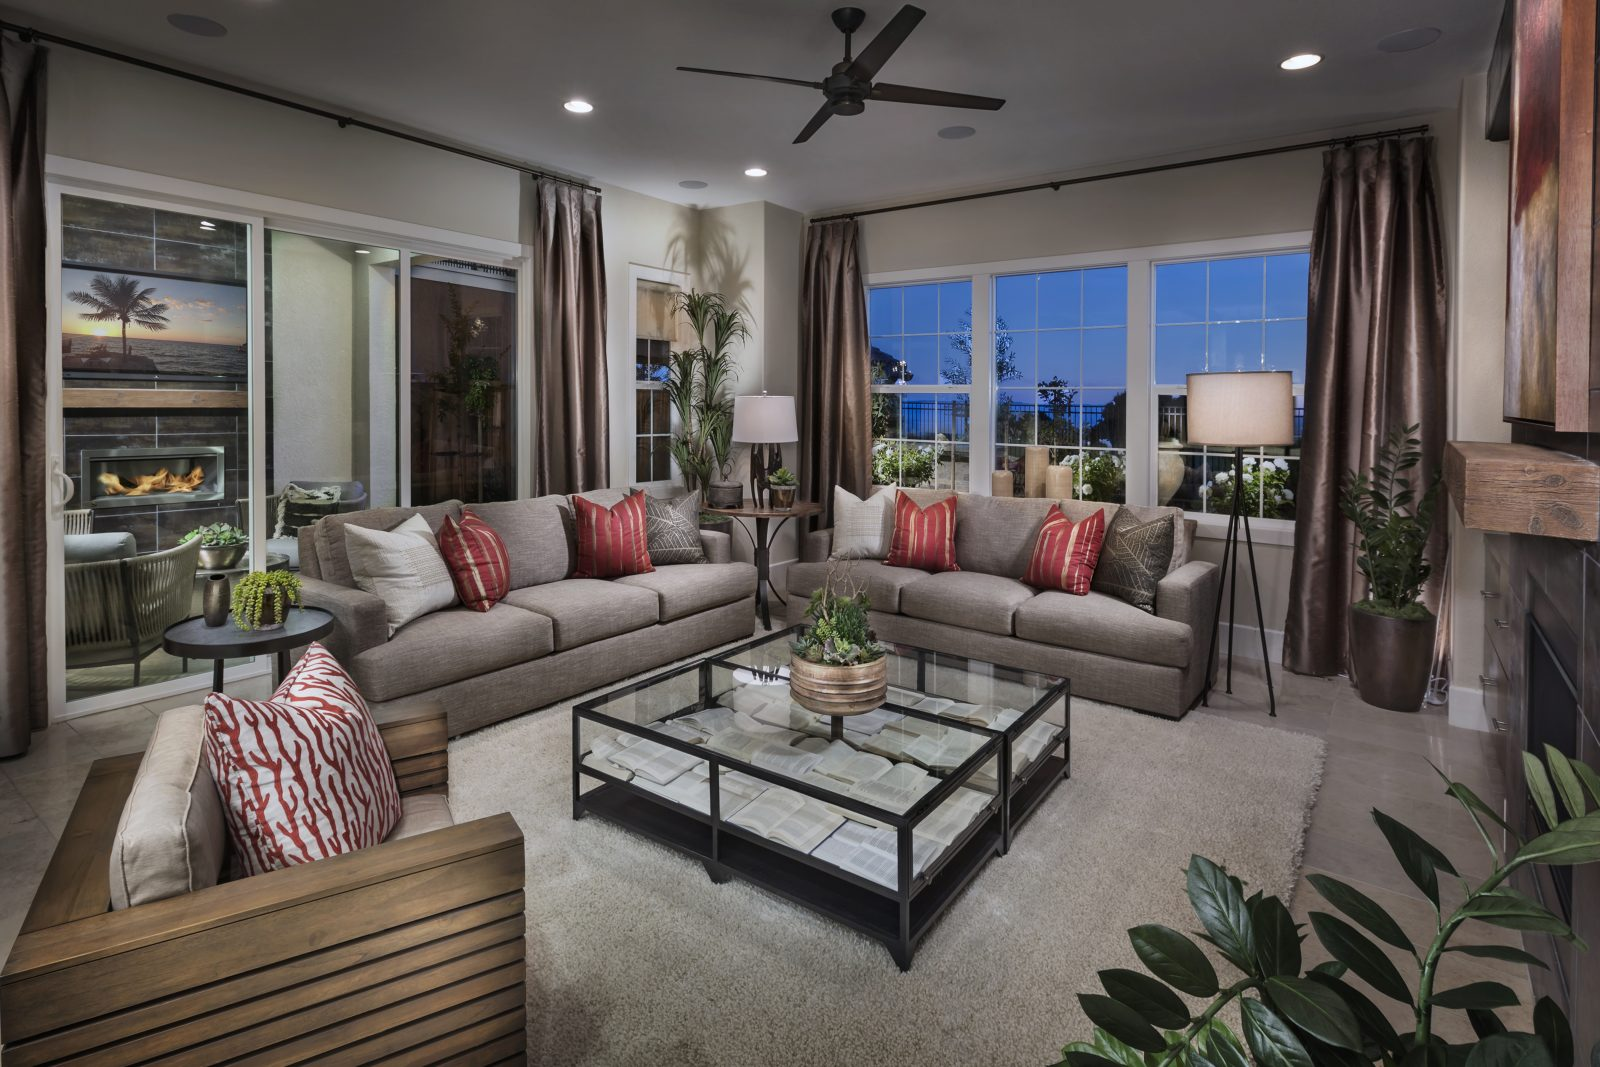 Living room in new luxury home | Crown Point at Stonebrae in Hayward, CA | Brookfield Residential